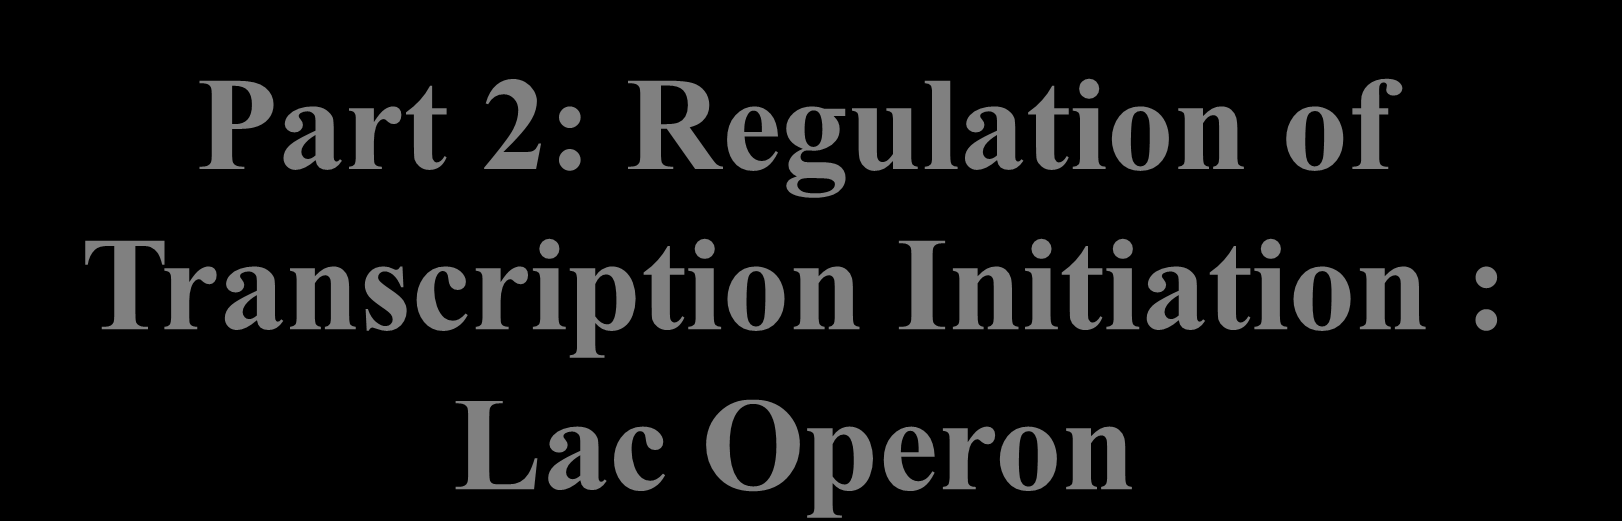 Part 2: Regulation of